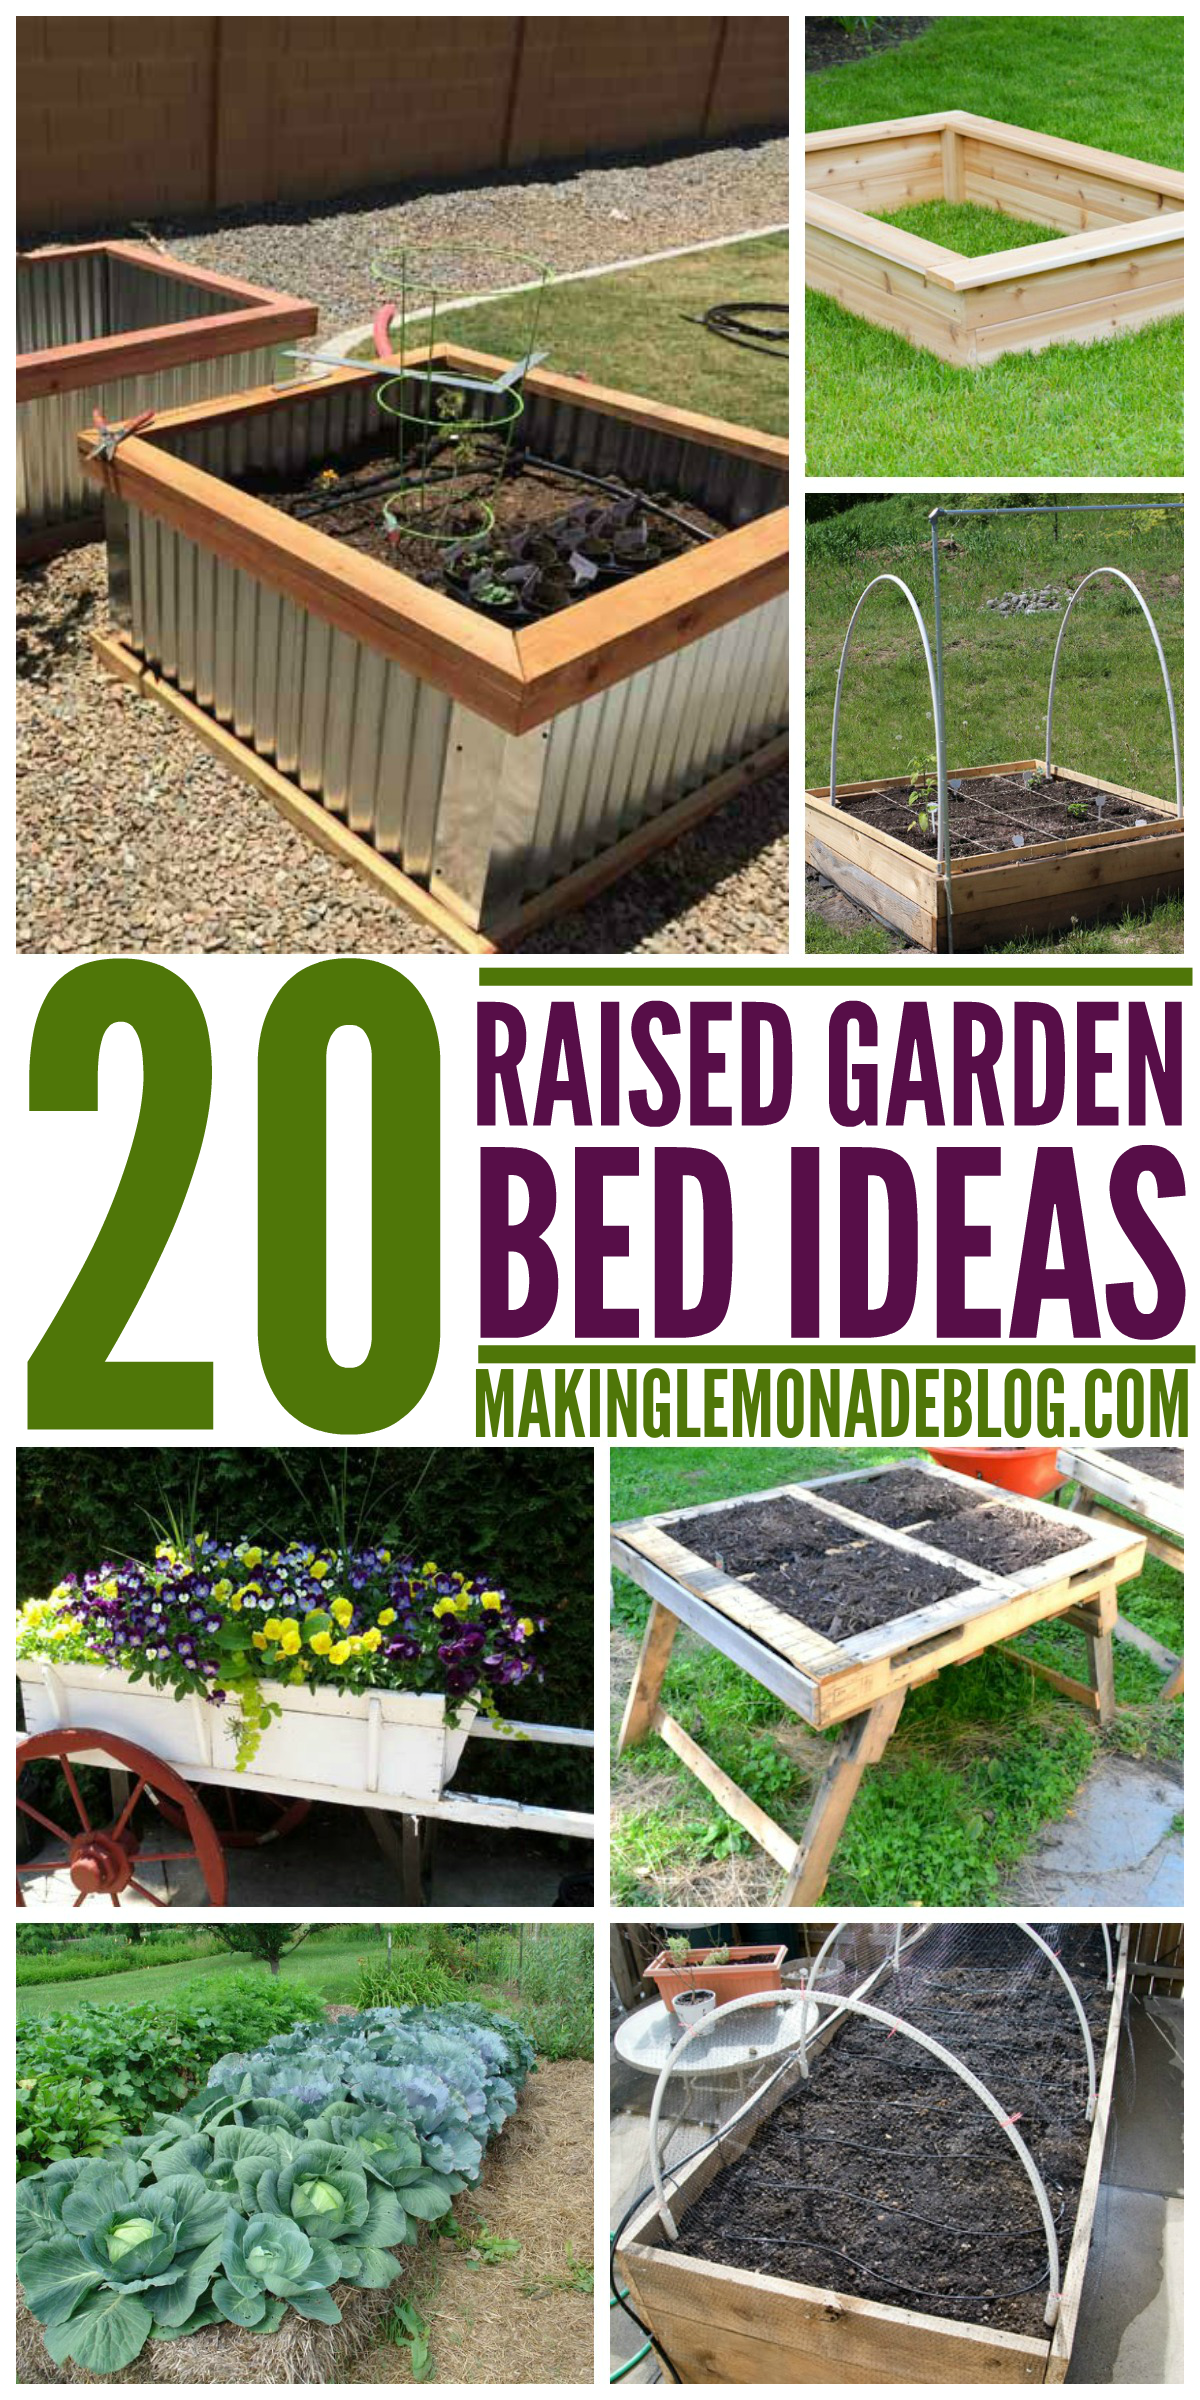 These raised garden bed ideas are so easy and clever, I